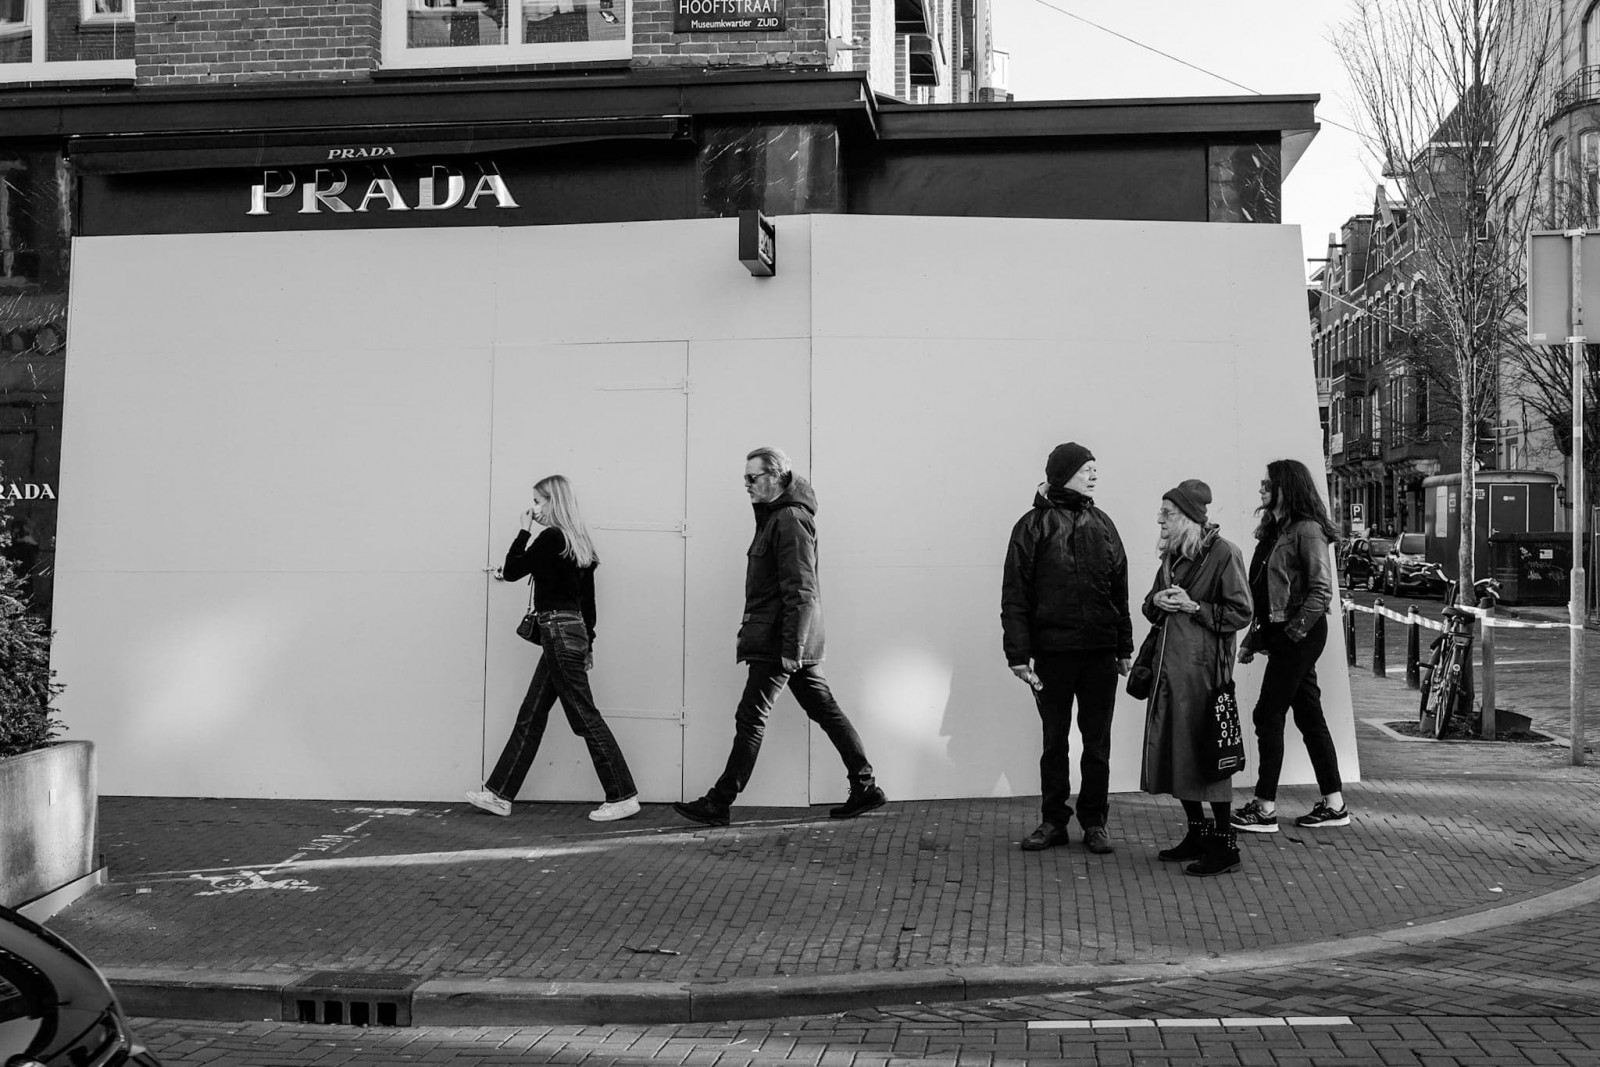 prada-at-the-pc-hooftstraat-amsterdam